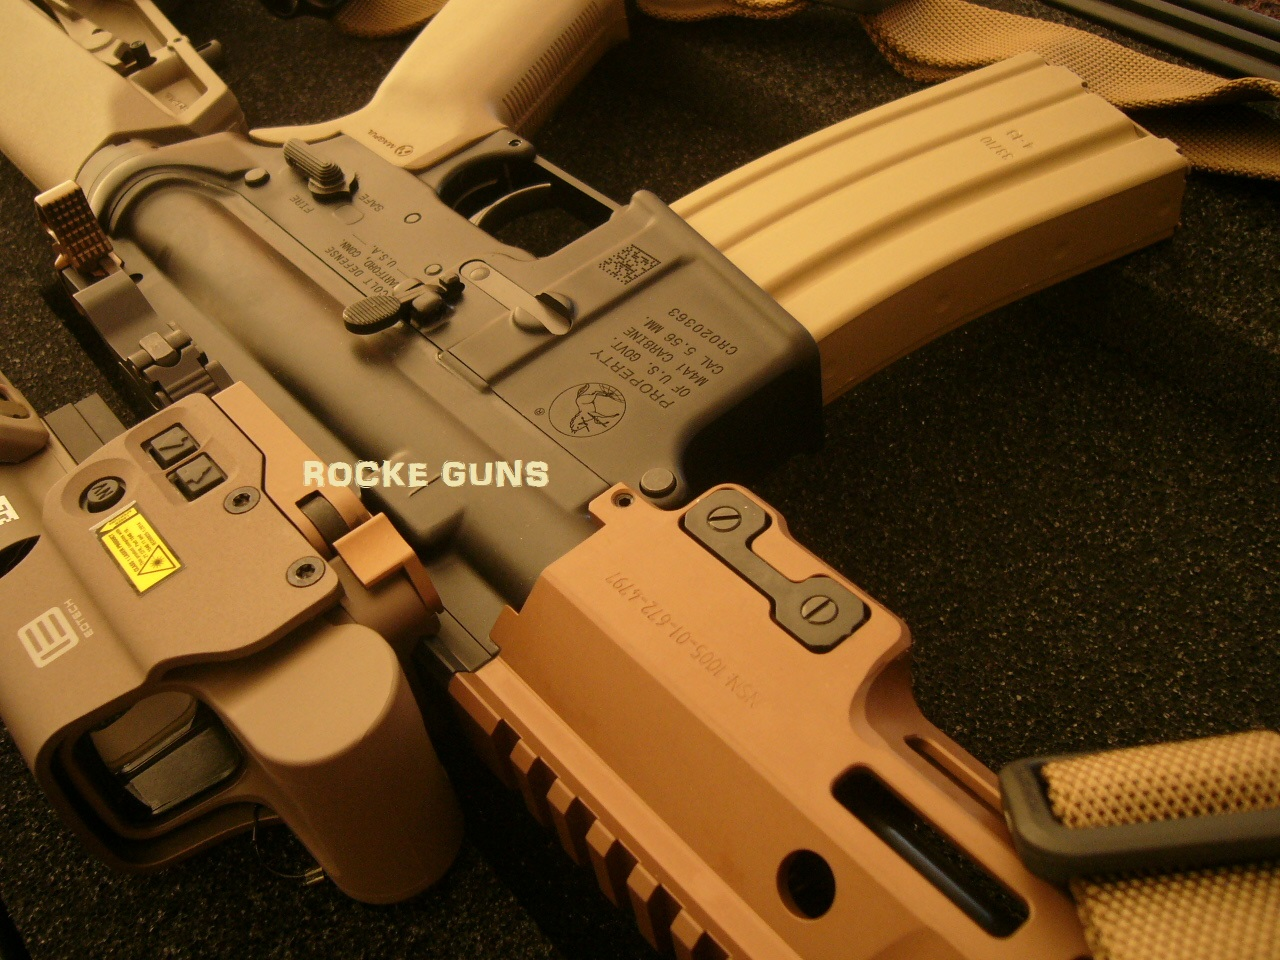 CURRENT ISSUE SOPMOD SOCOM RANGER M4 DEPLOYMENT PACKAGE CIVVIE LEGAL